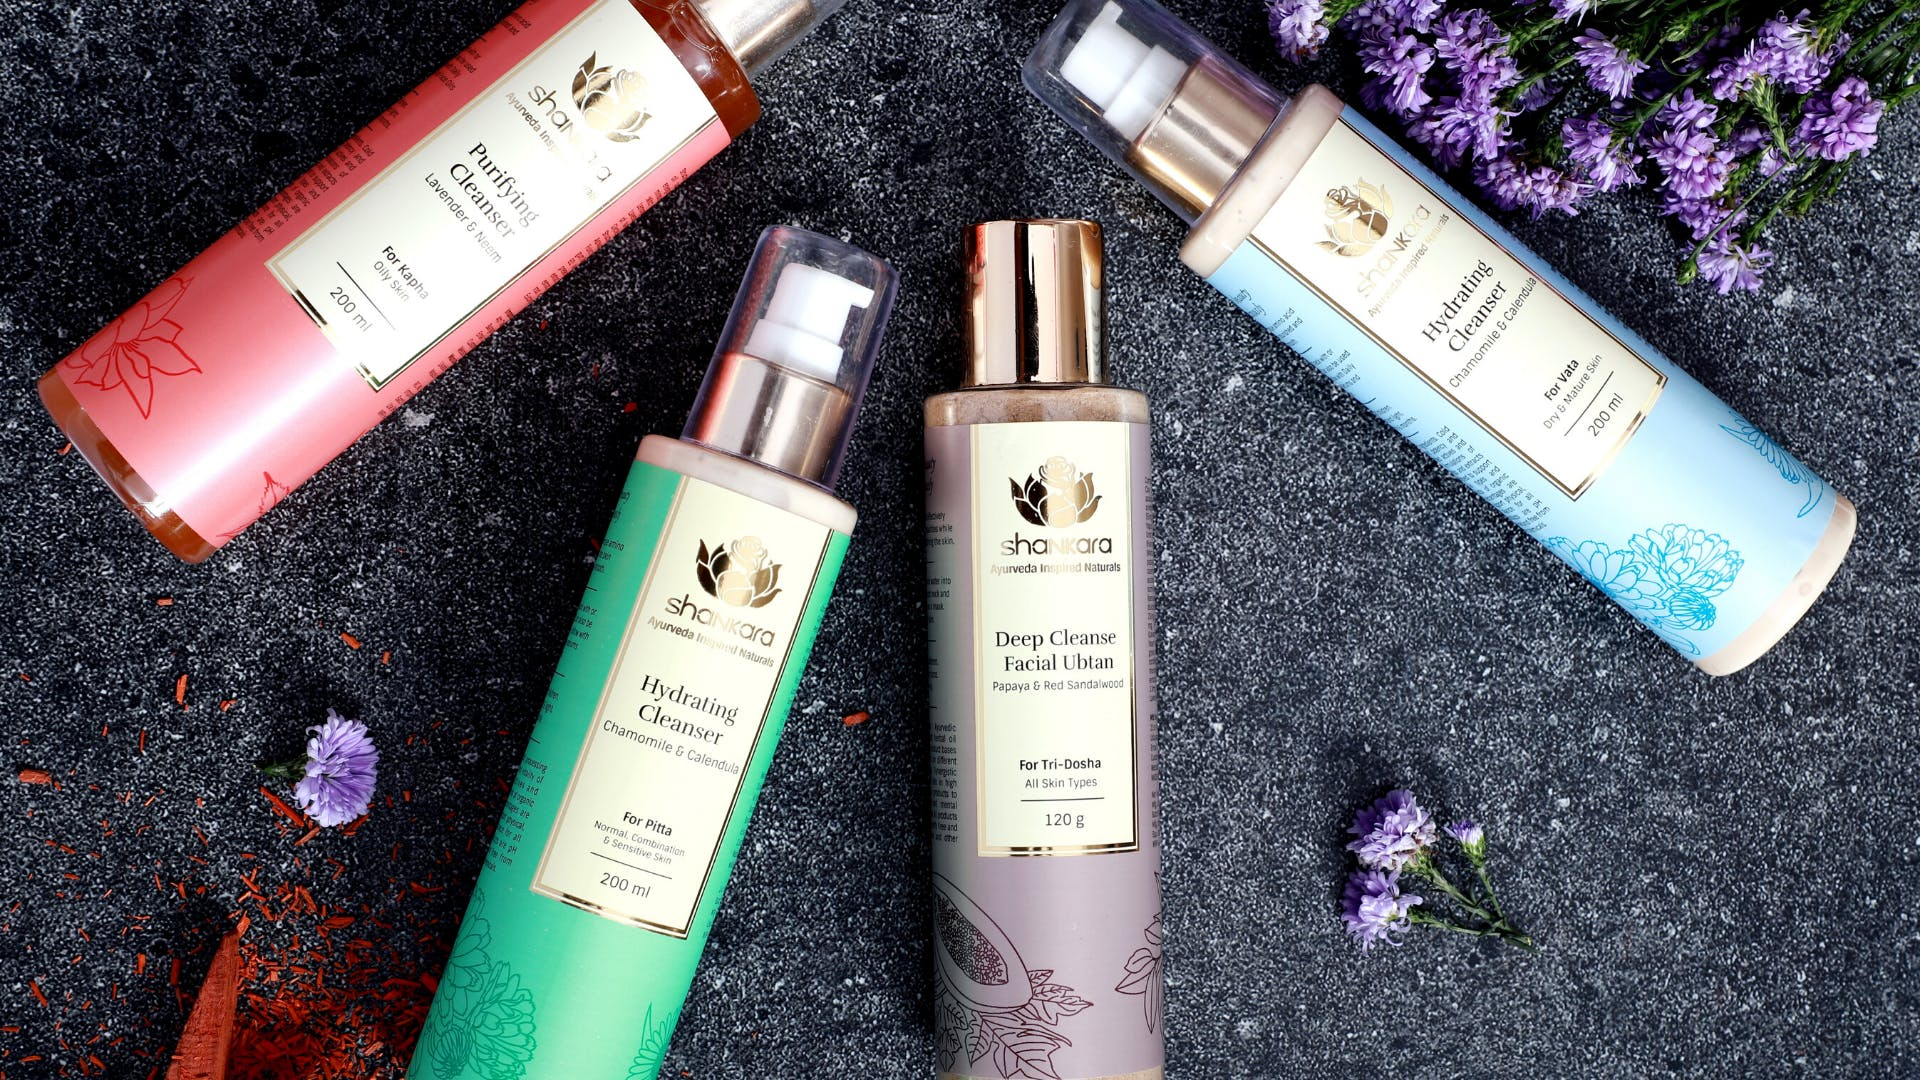 image - #LBBGo: Look Lit This Festive Season With 25% Off From All Natural Brand, Shankara Naturals